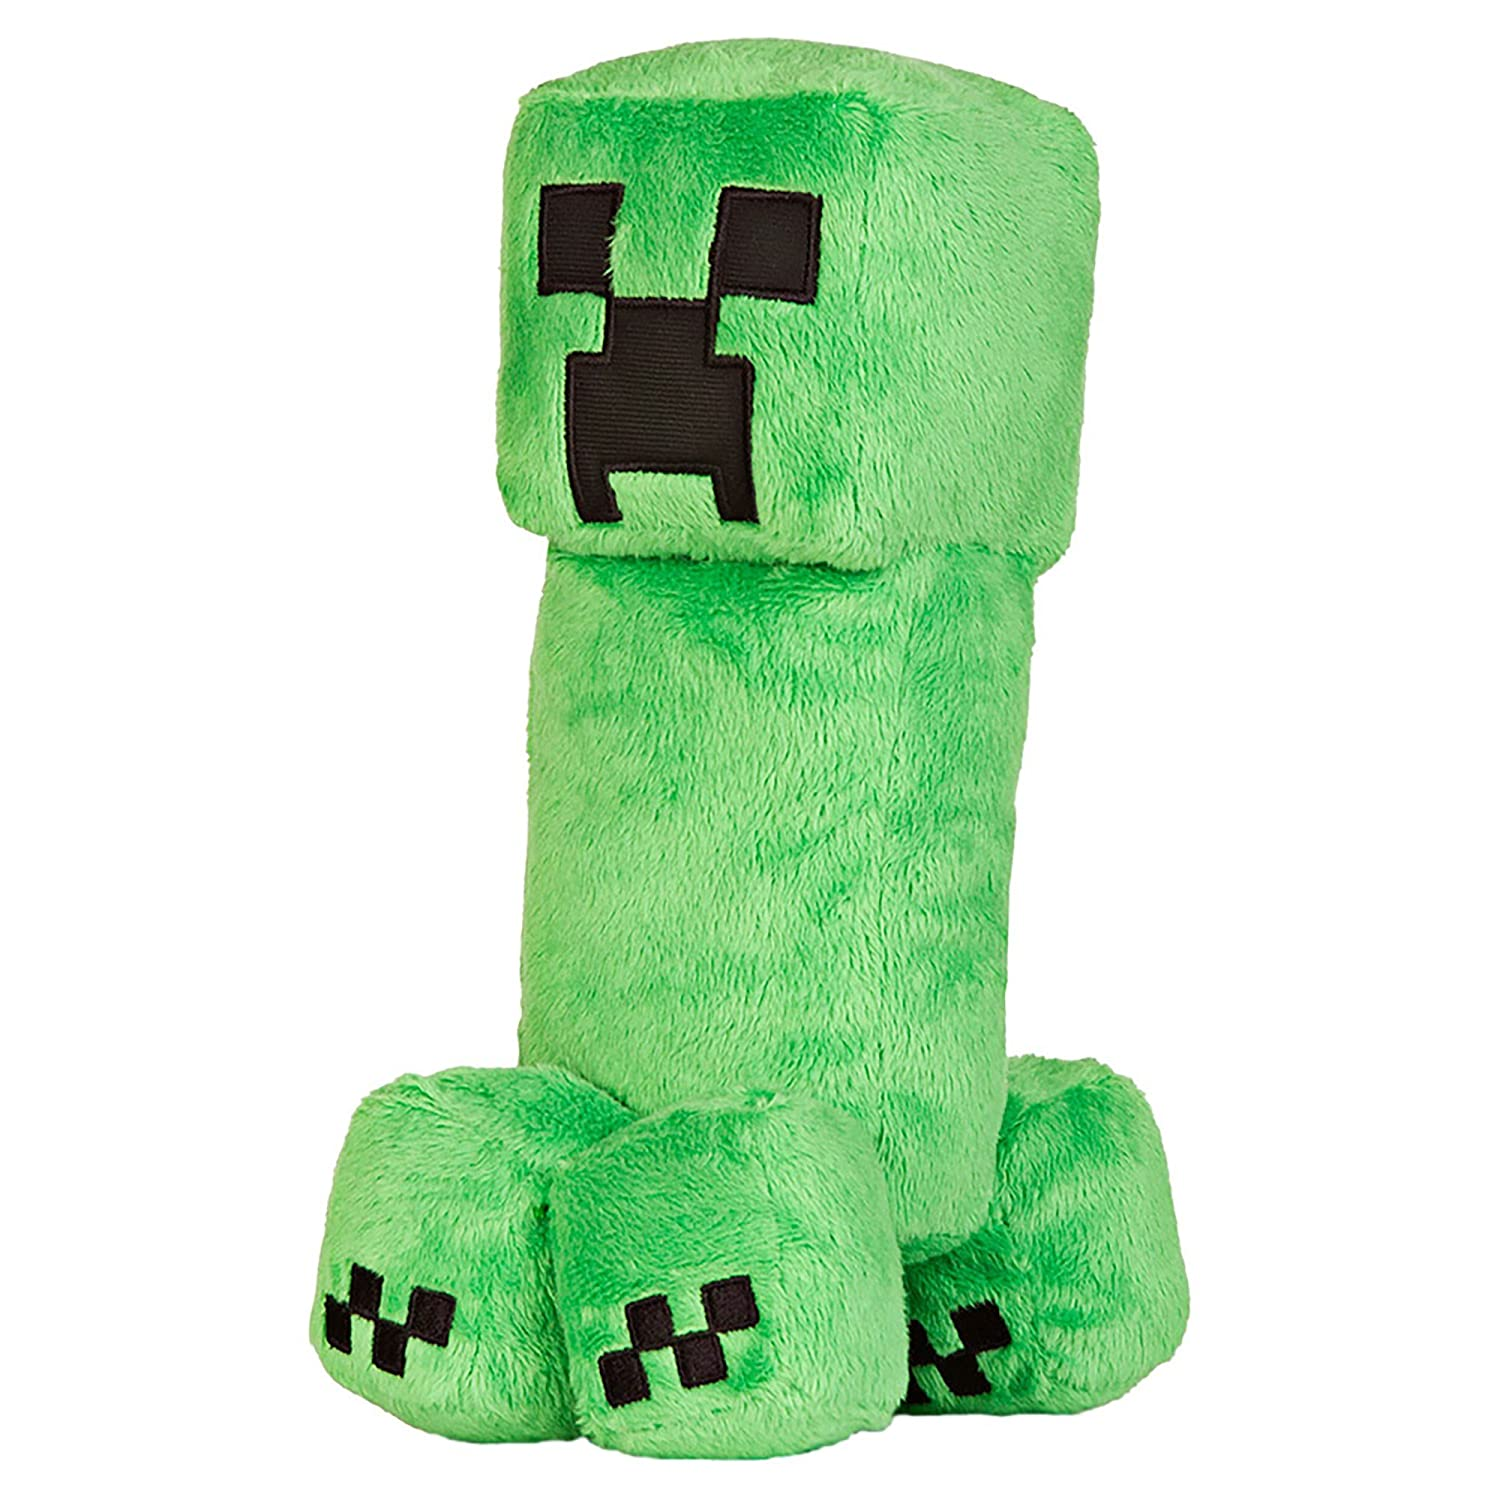 JINX Minecraft 10.5 Creeper Plush Stuffed Toy Unboxed with Hang Tag